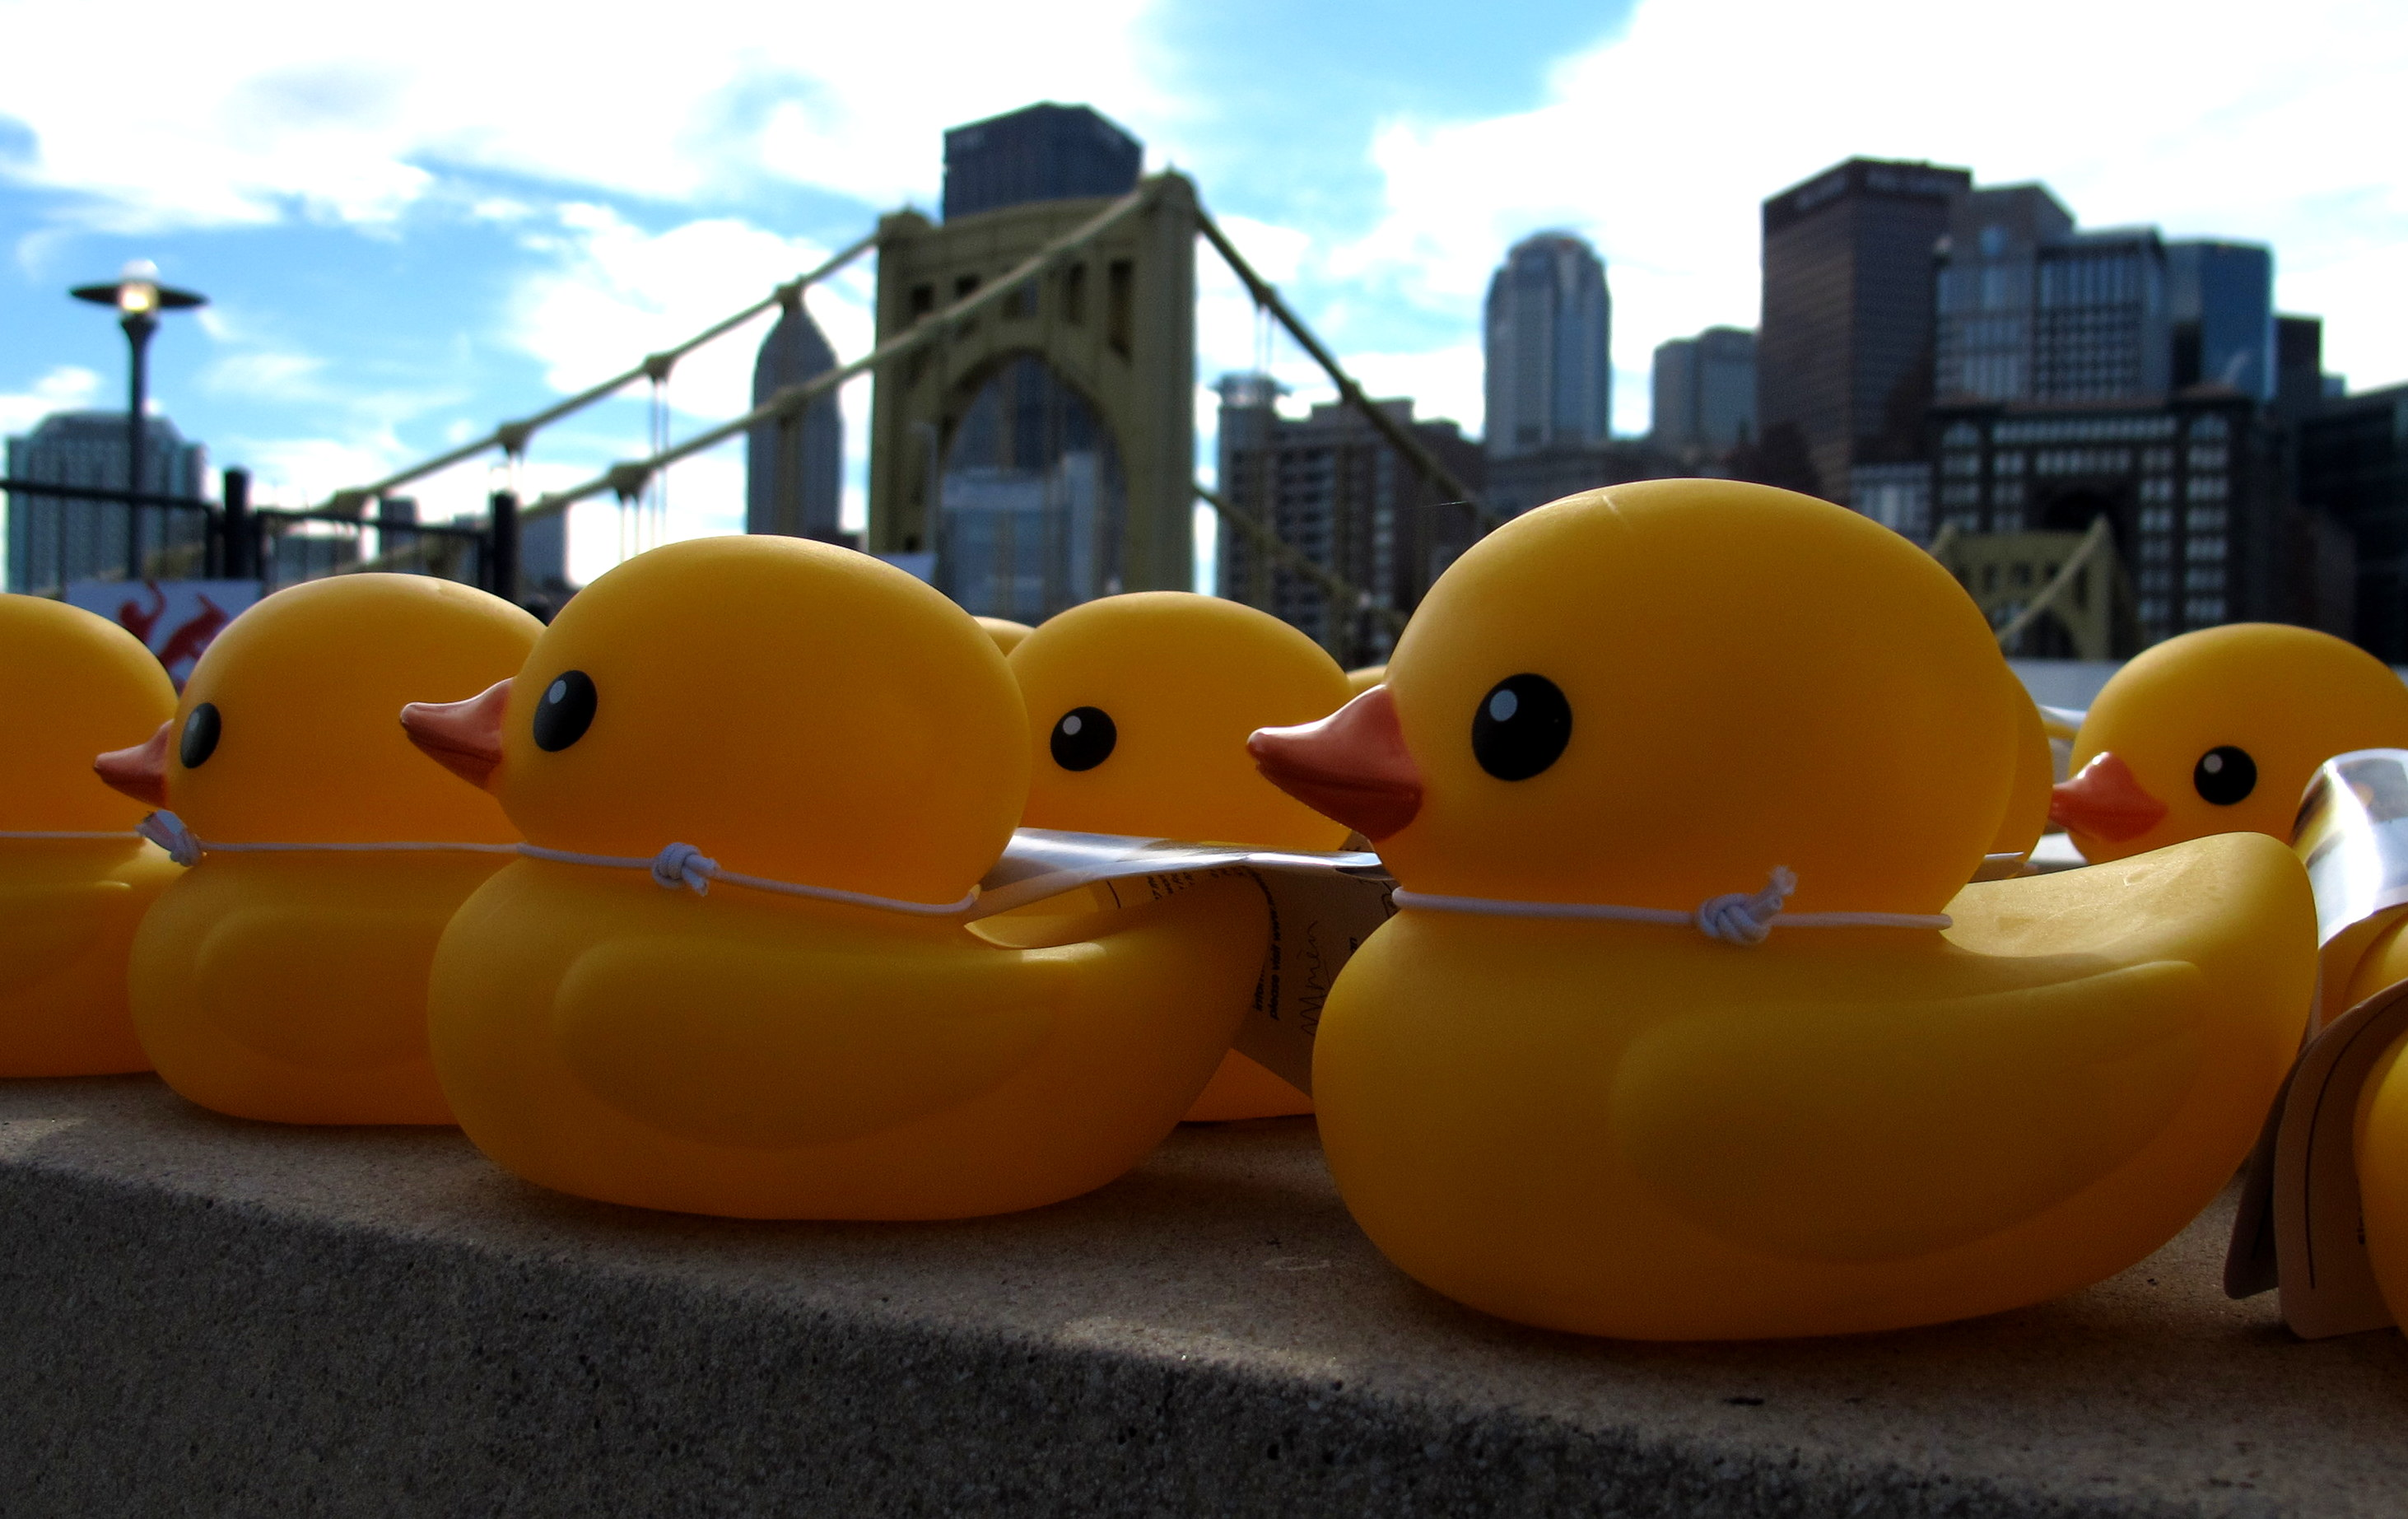 Rubber Duck Project | 90.5 WESA